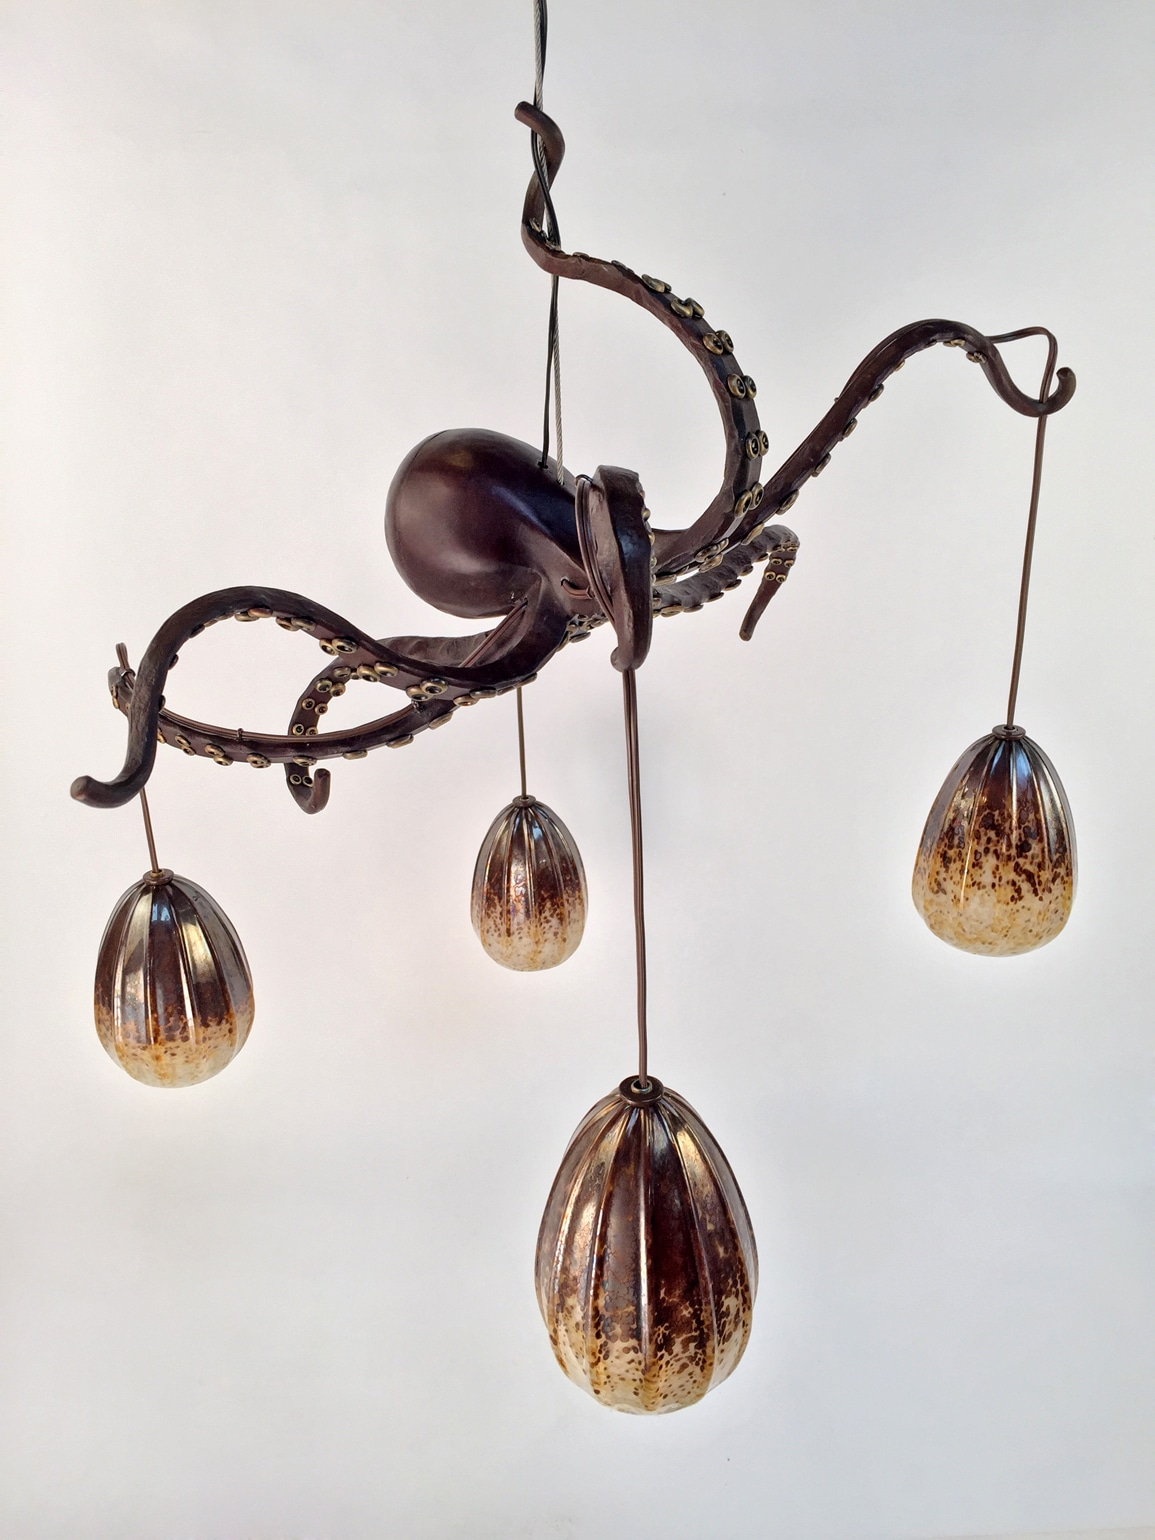 Blacksmith, Forged, Custom, Design, Daniel Hopper Design, Iron, Steel, Bronze, Lighting, Chandelier, Octopus